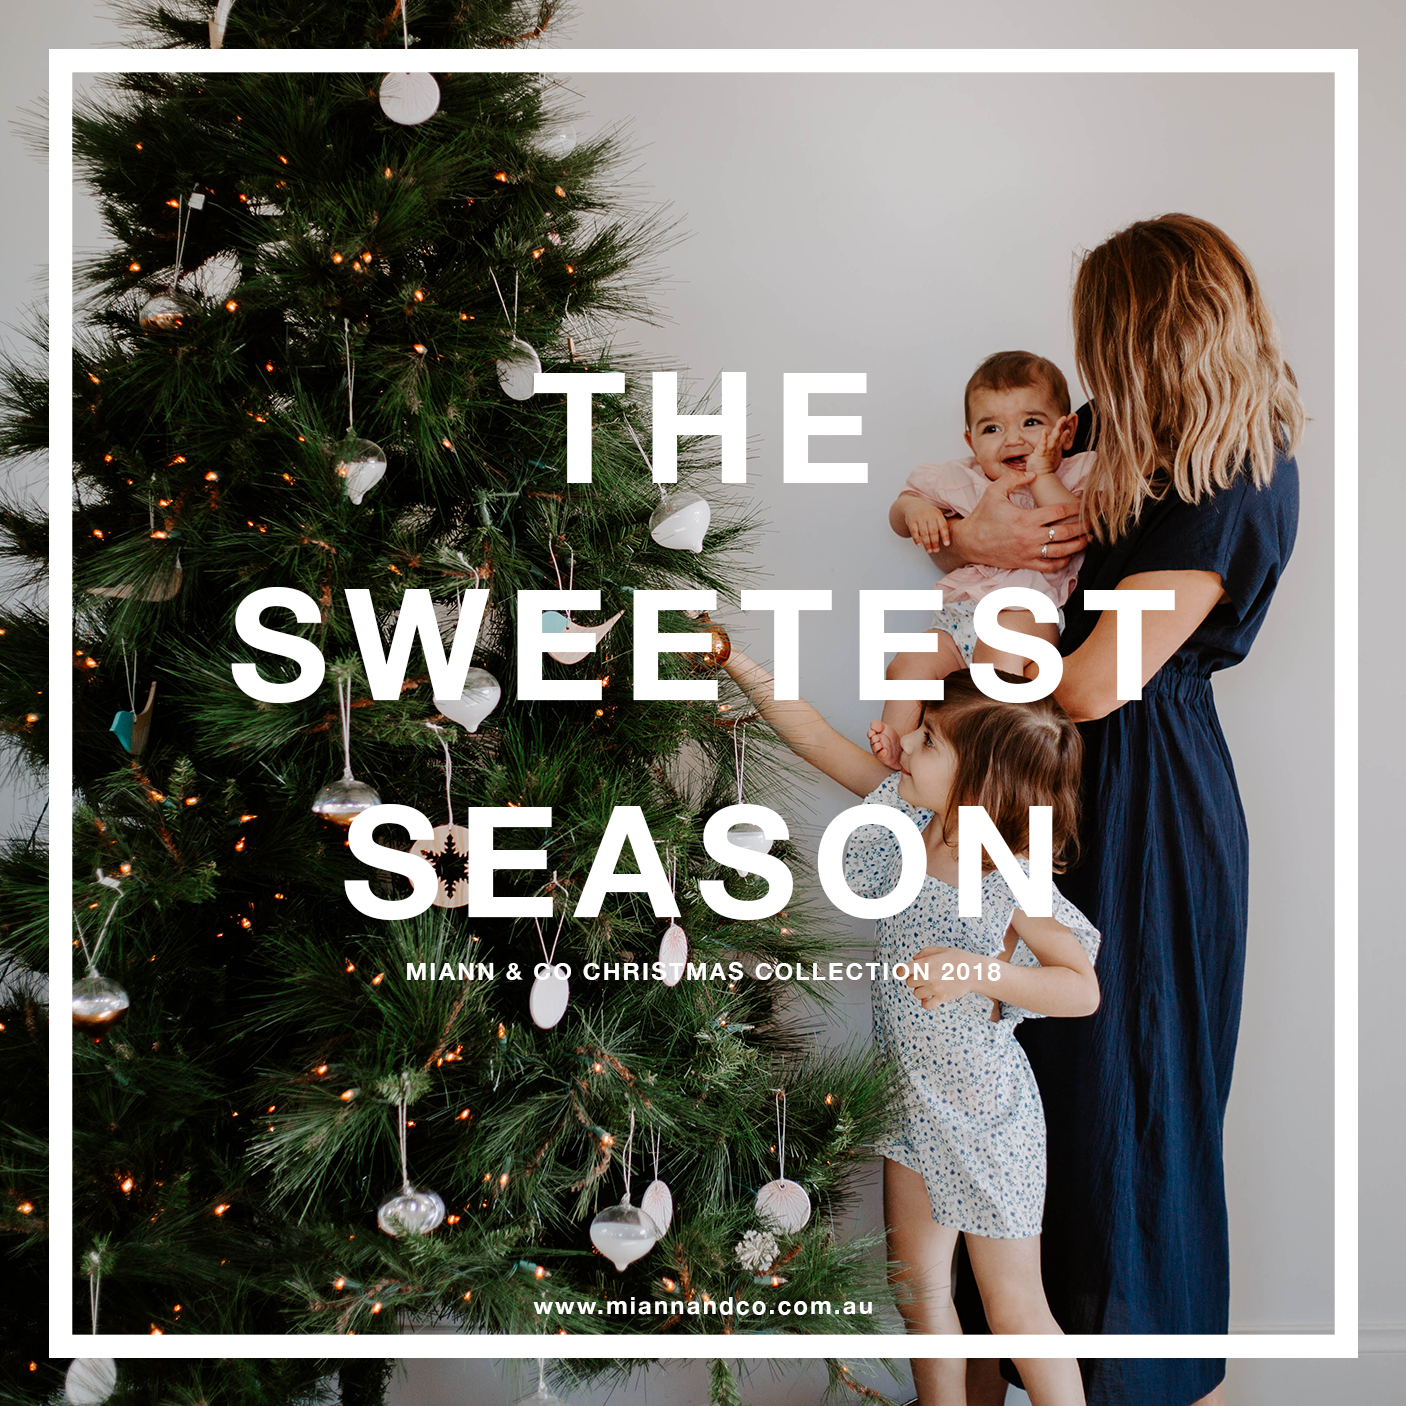 THE SWEETEST SEASON